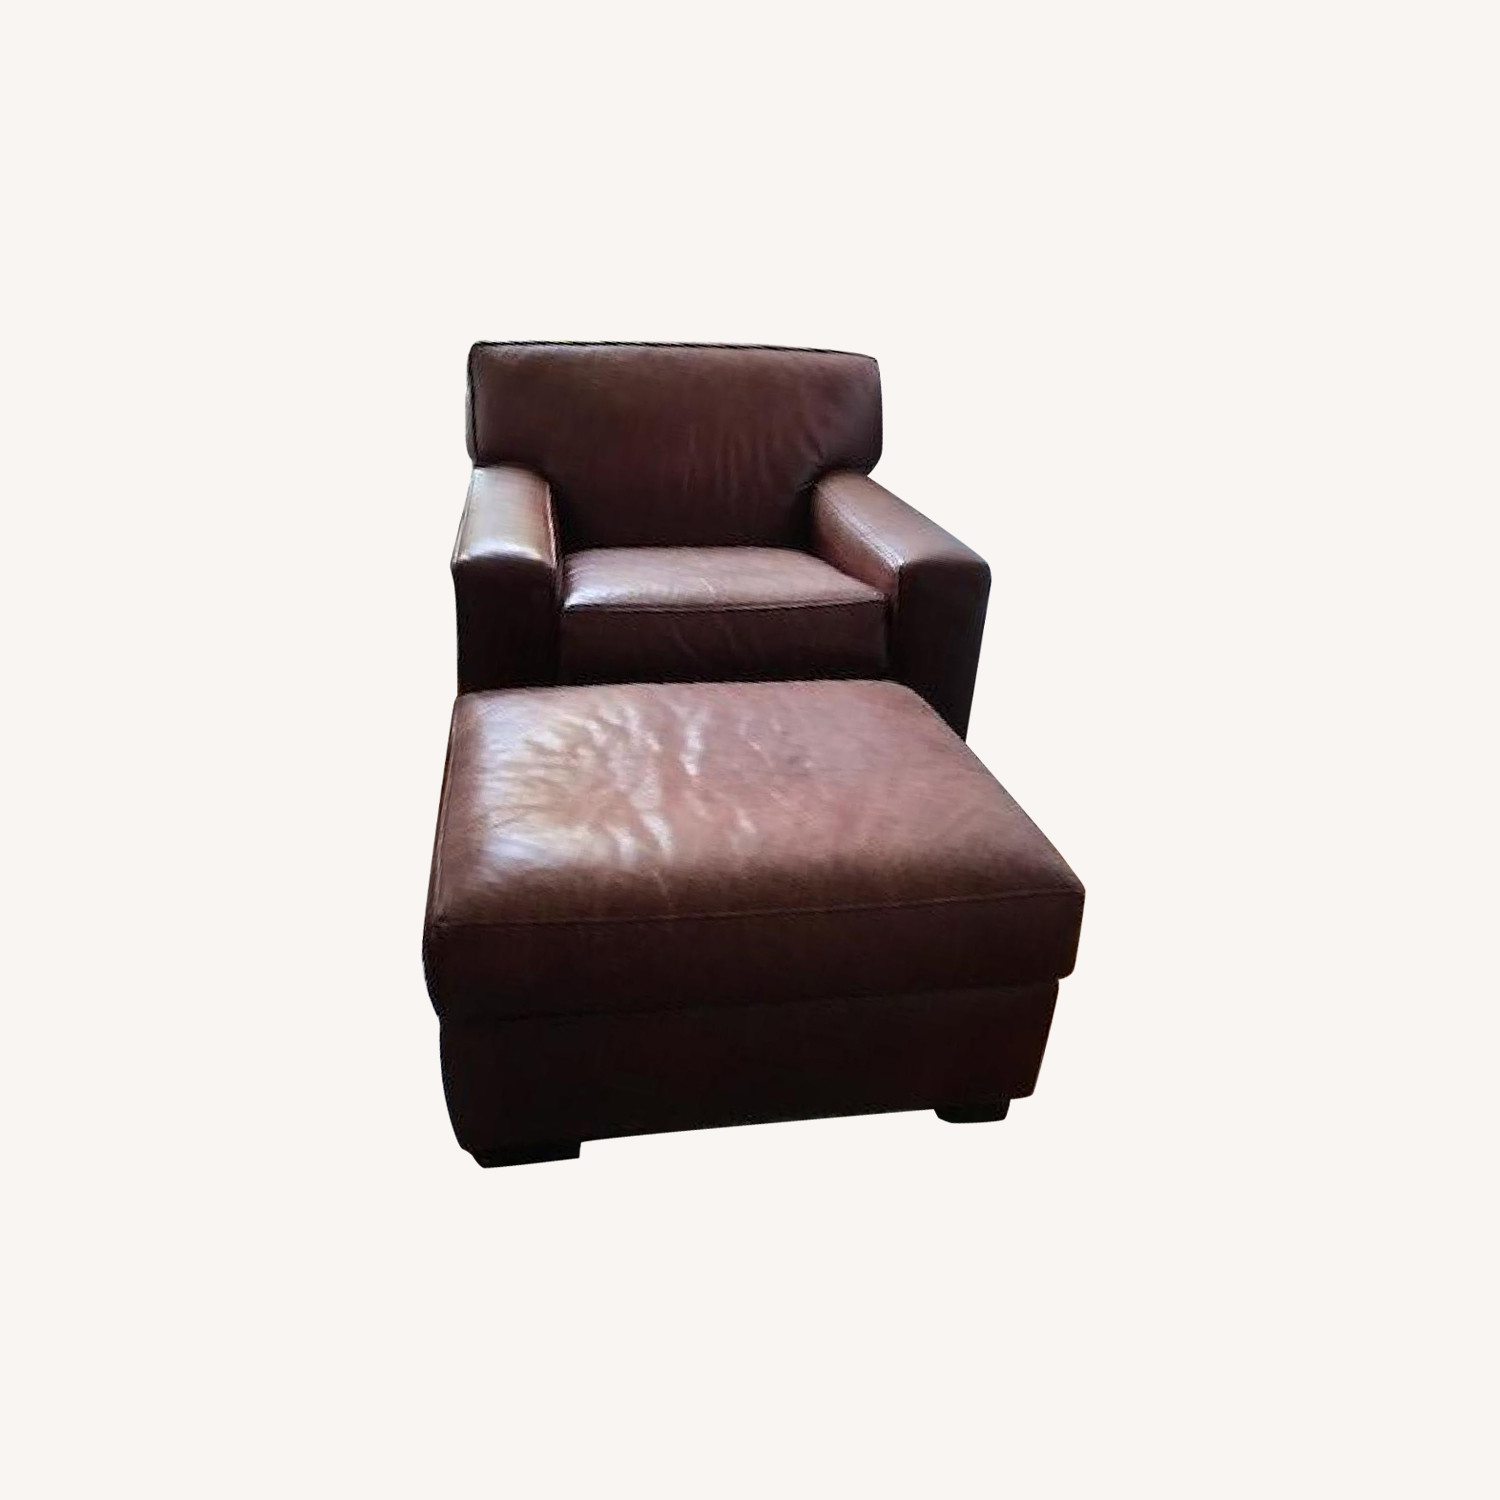 Fine Pottery Barn Leather Chair Ottoman Aptdeco Caraccident5 Cool Chair Designs And Ideas Caraccident5Info